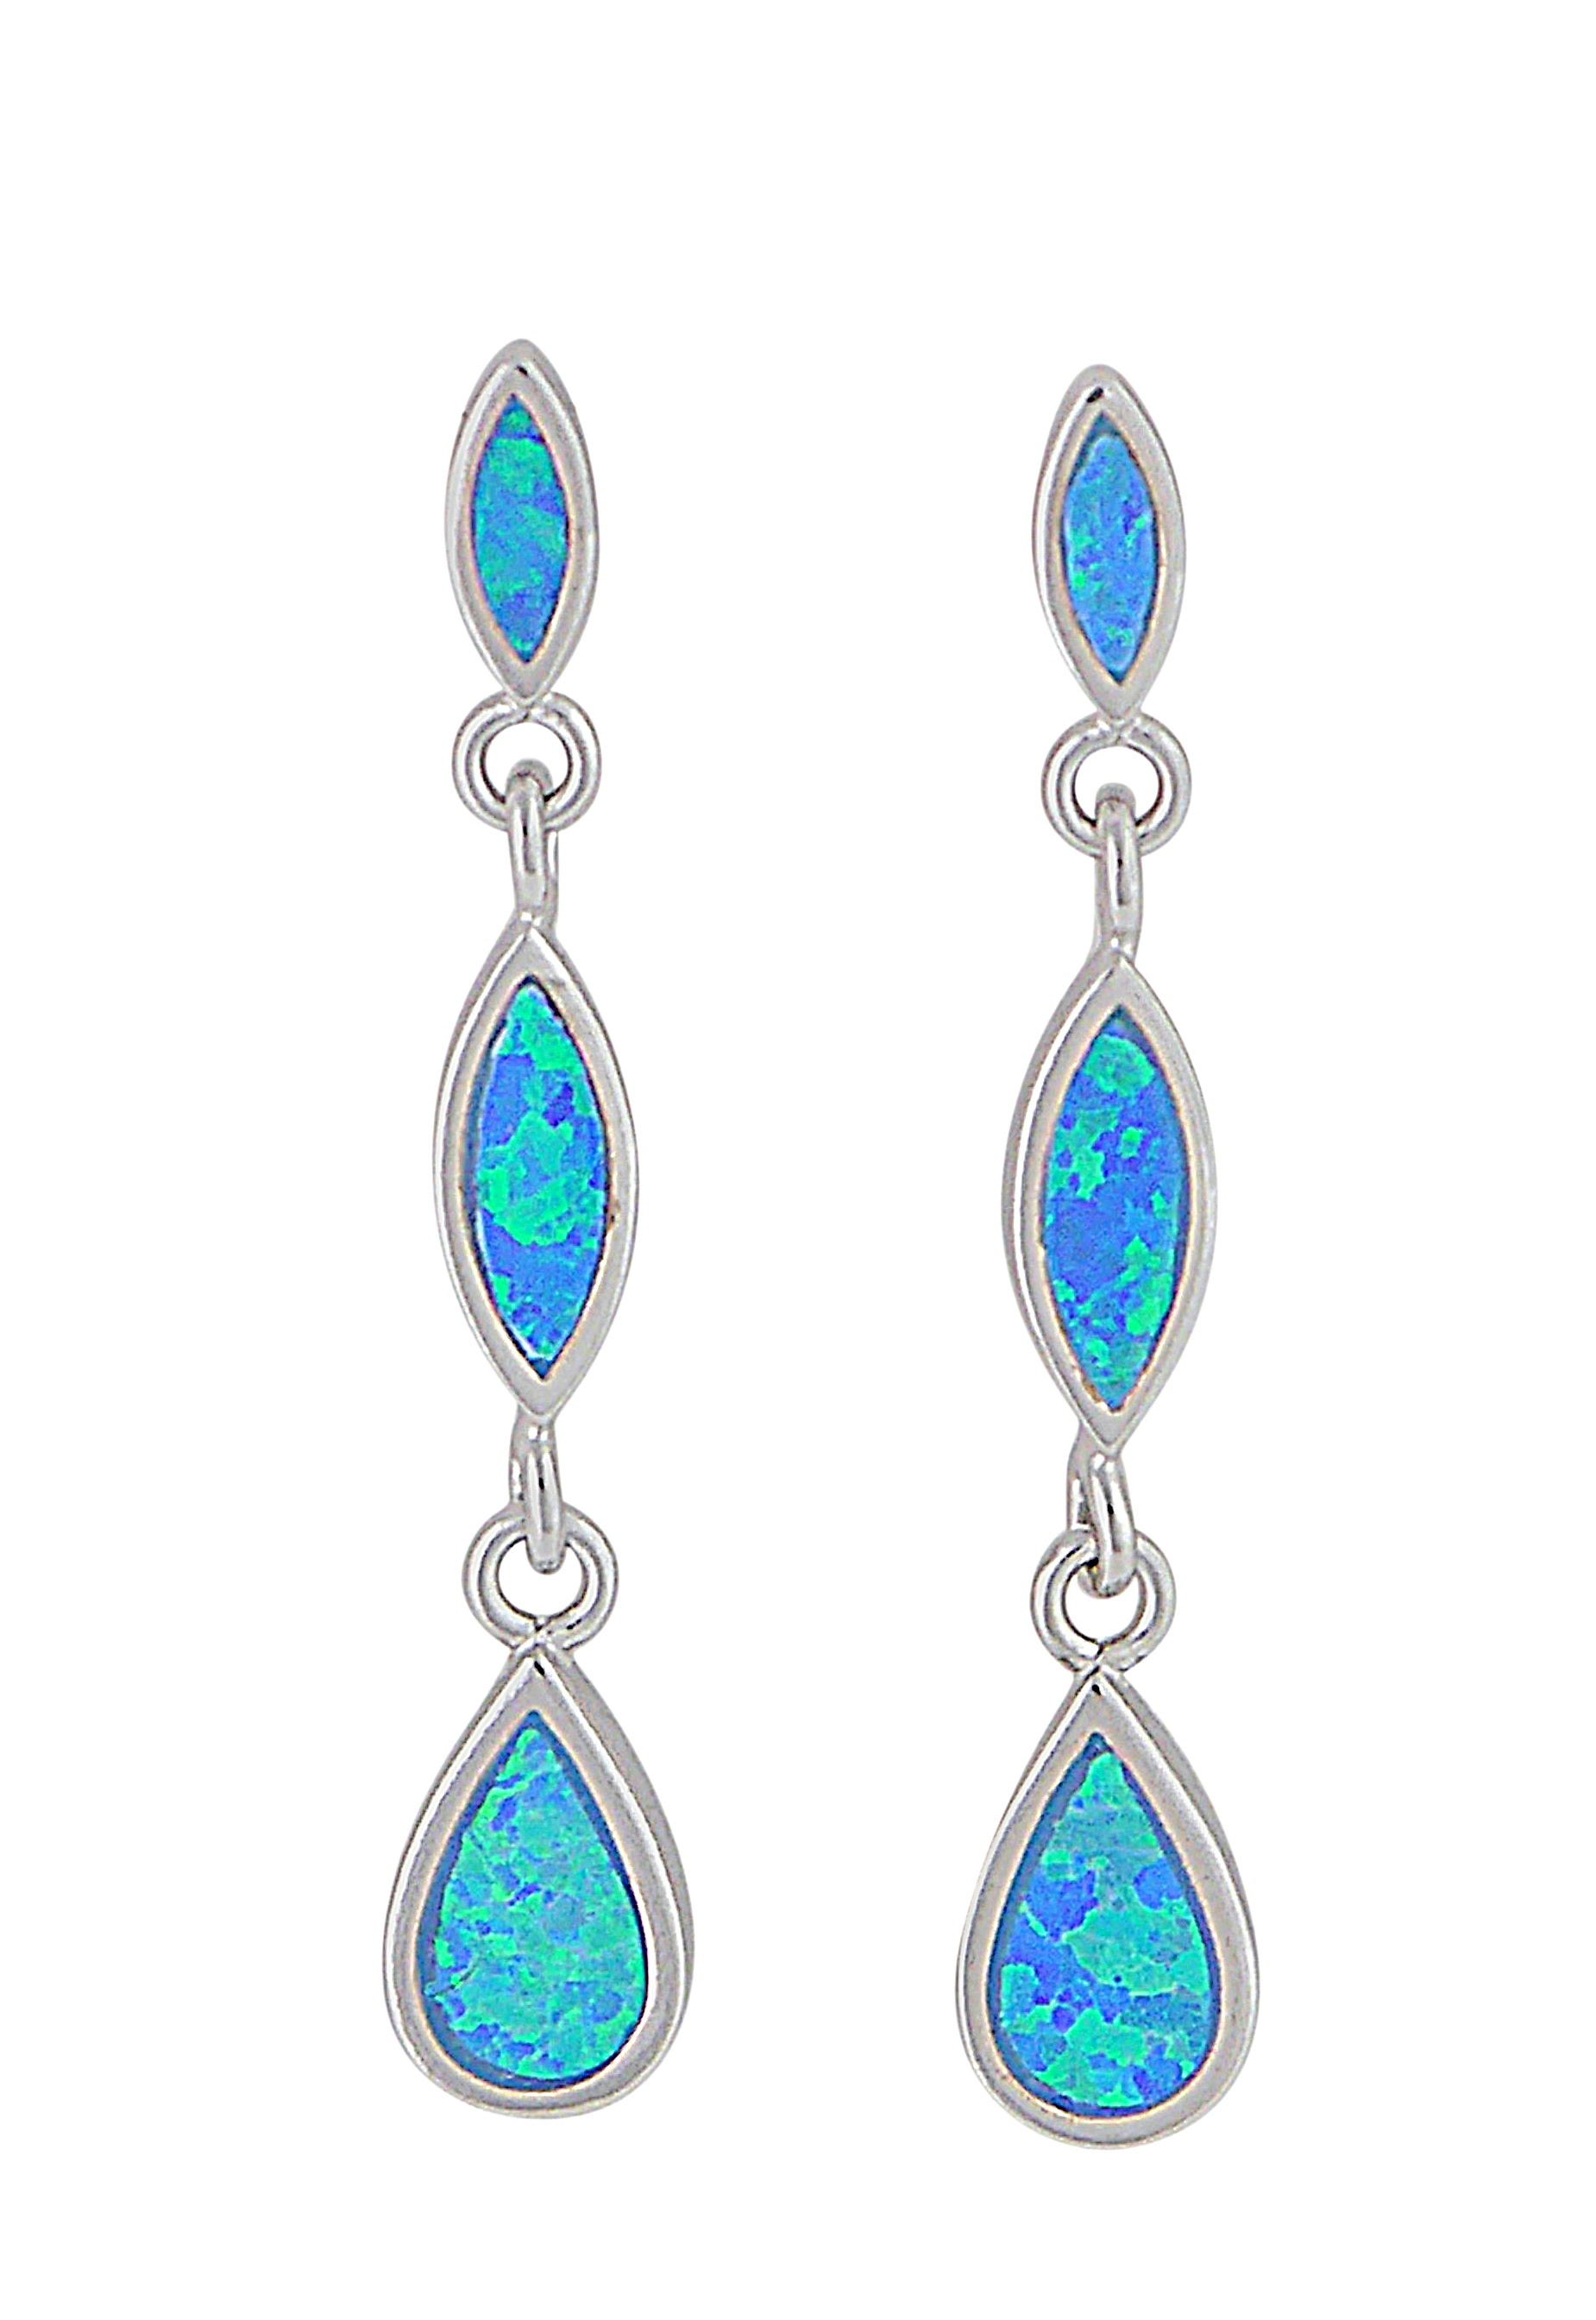 Teardrop and Marquise Opal Silver Earrings | The Opal